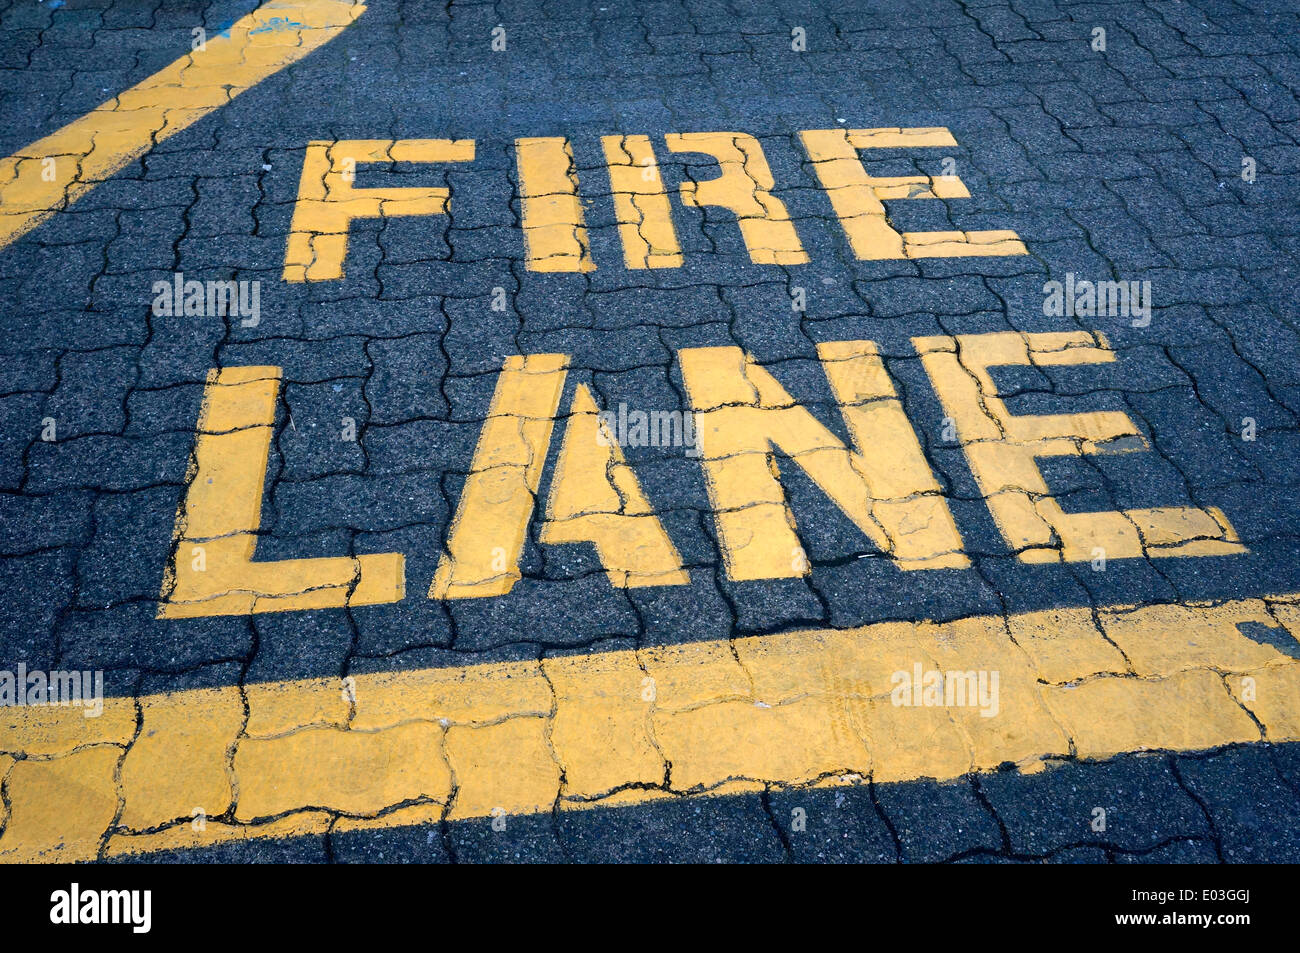 Fire Lane sign painted on the ground, Granville Island, Vancouver, British Columbia, Canada - Stock Image